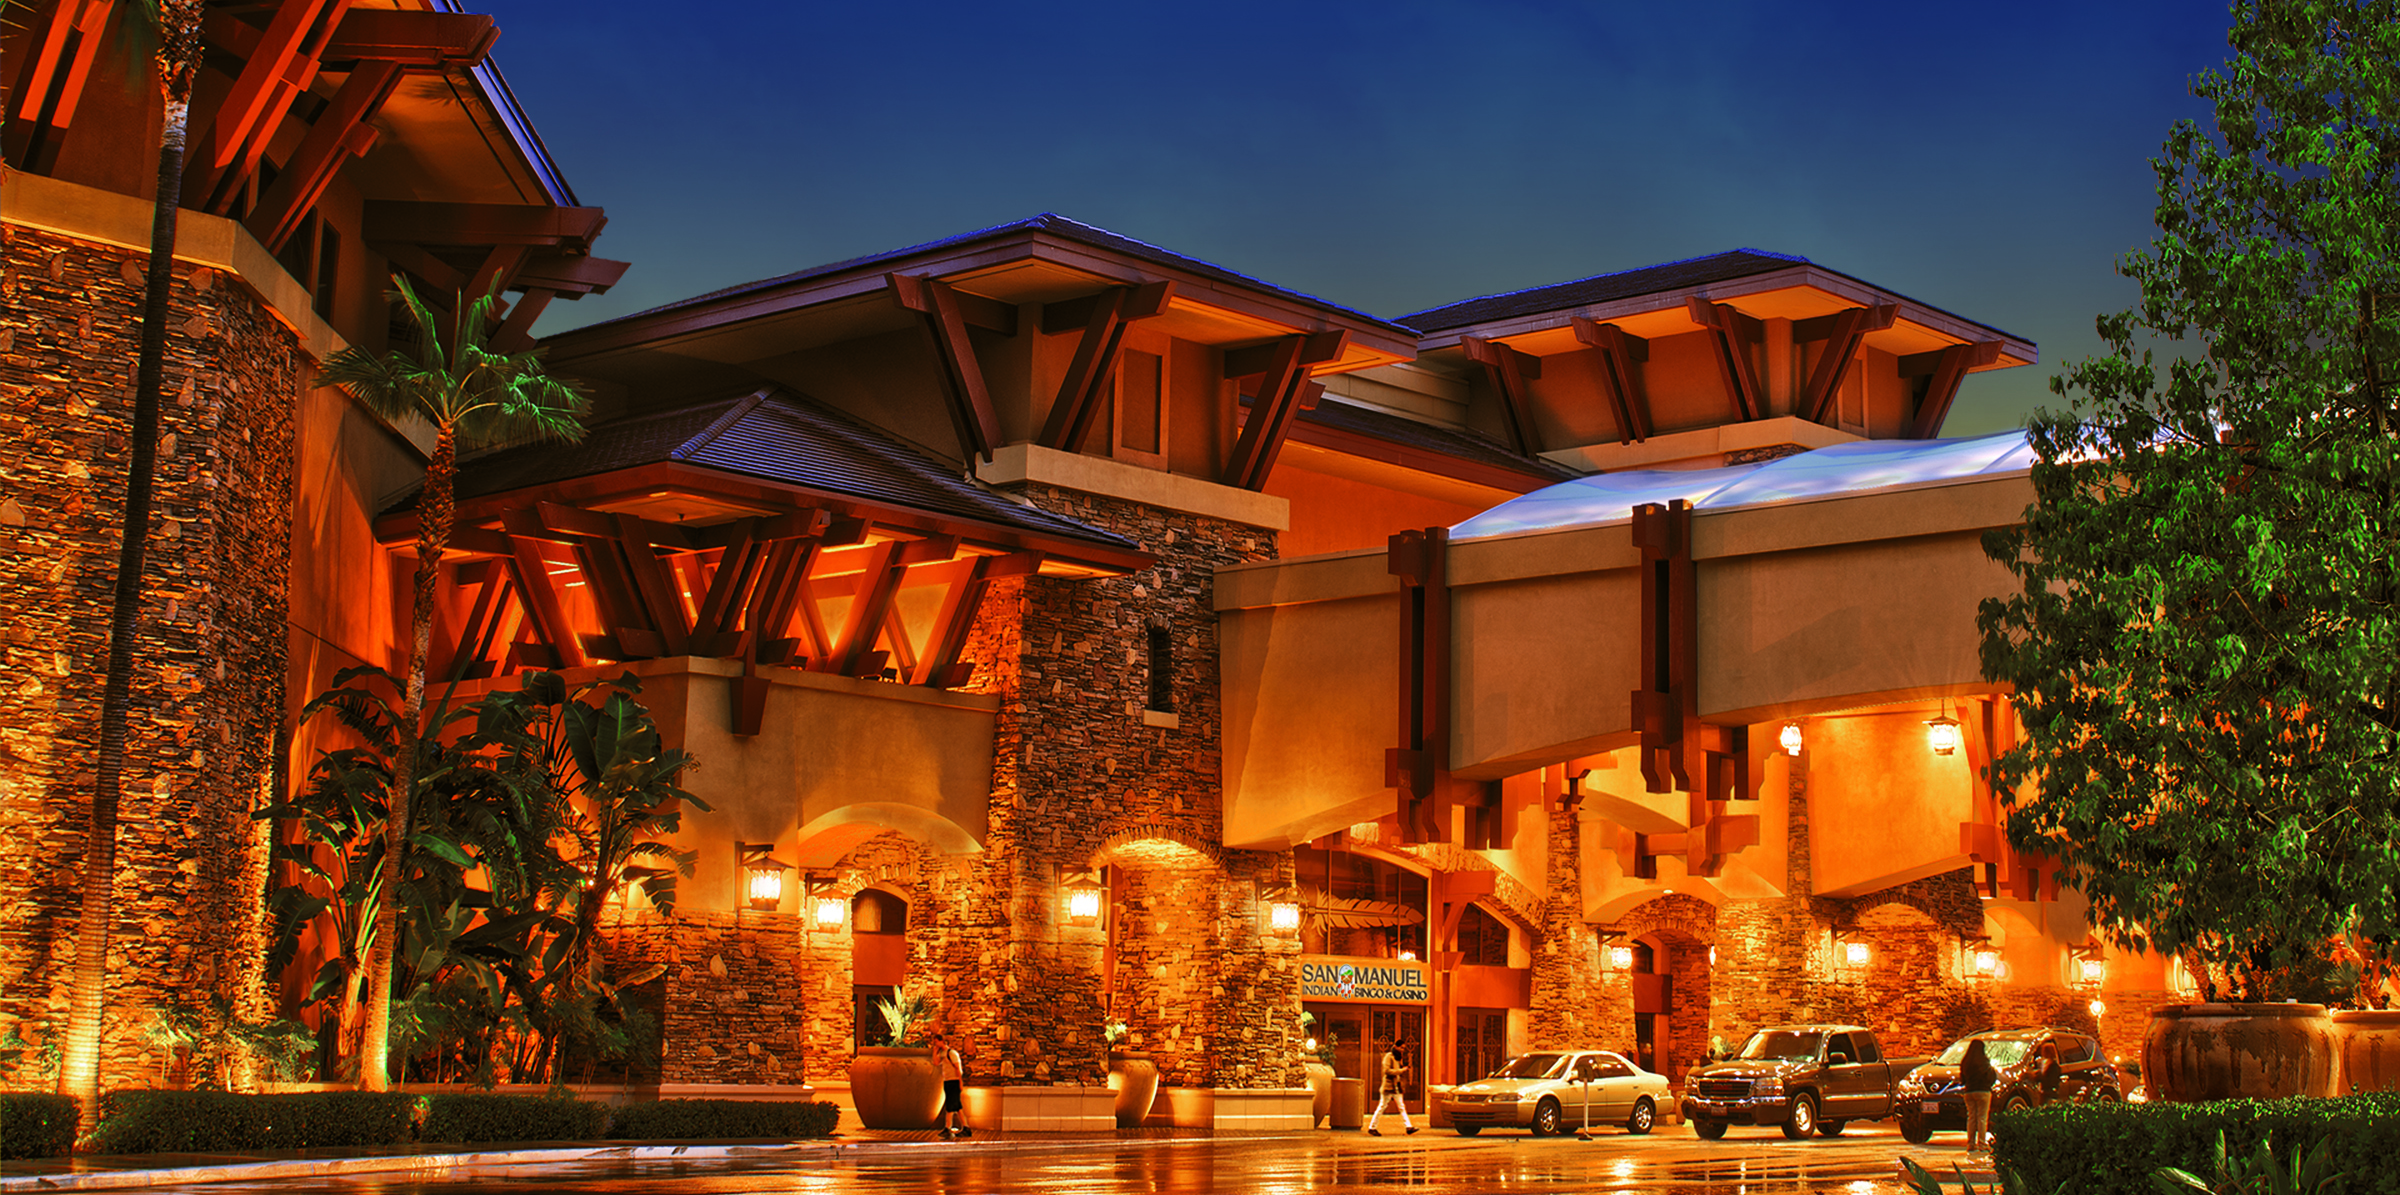 San manual indian casino park casino hotel